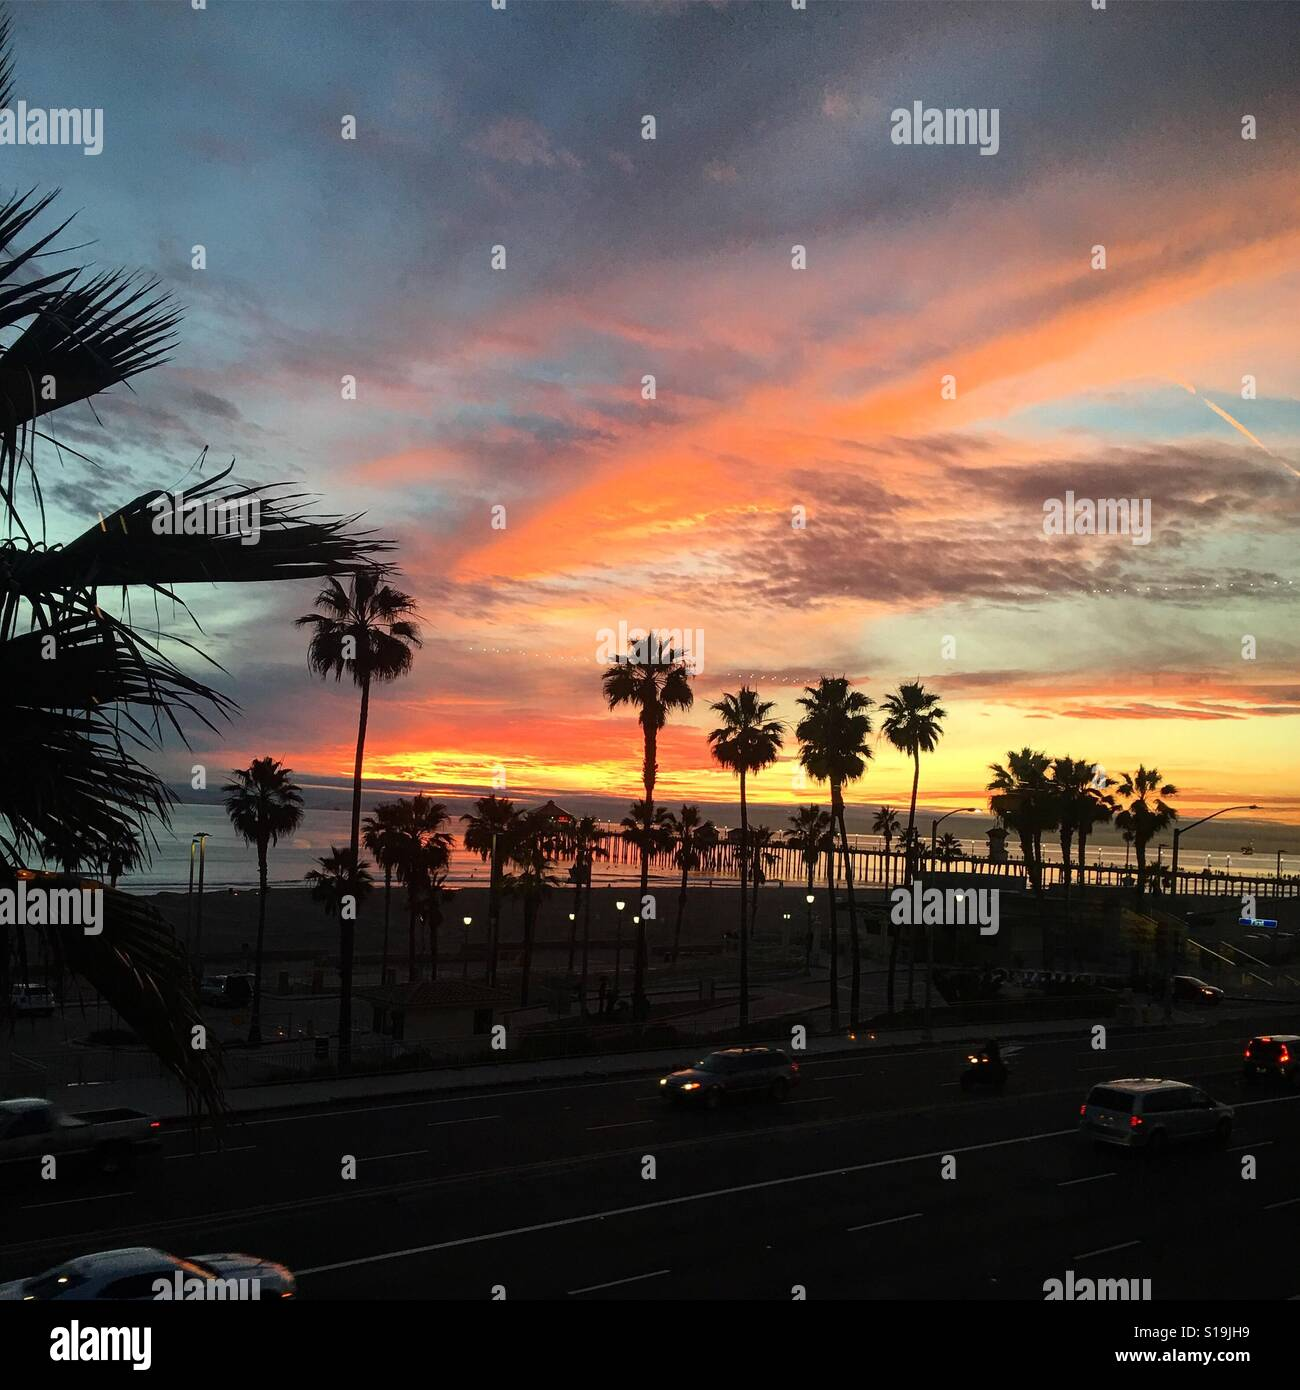 Sunset over the pier in Huntington Beach CA - Stock Image